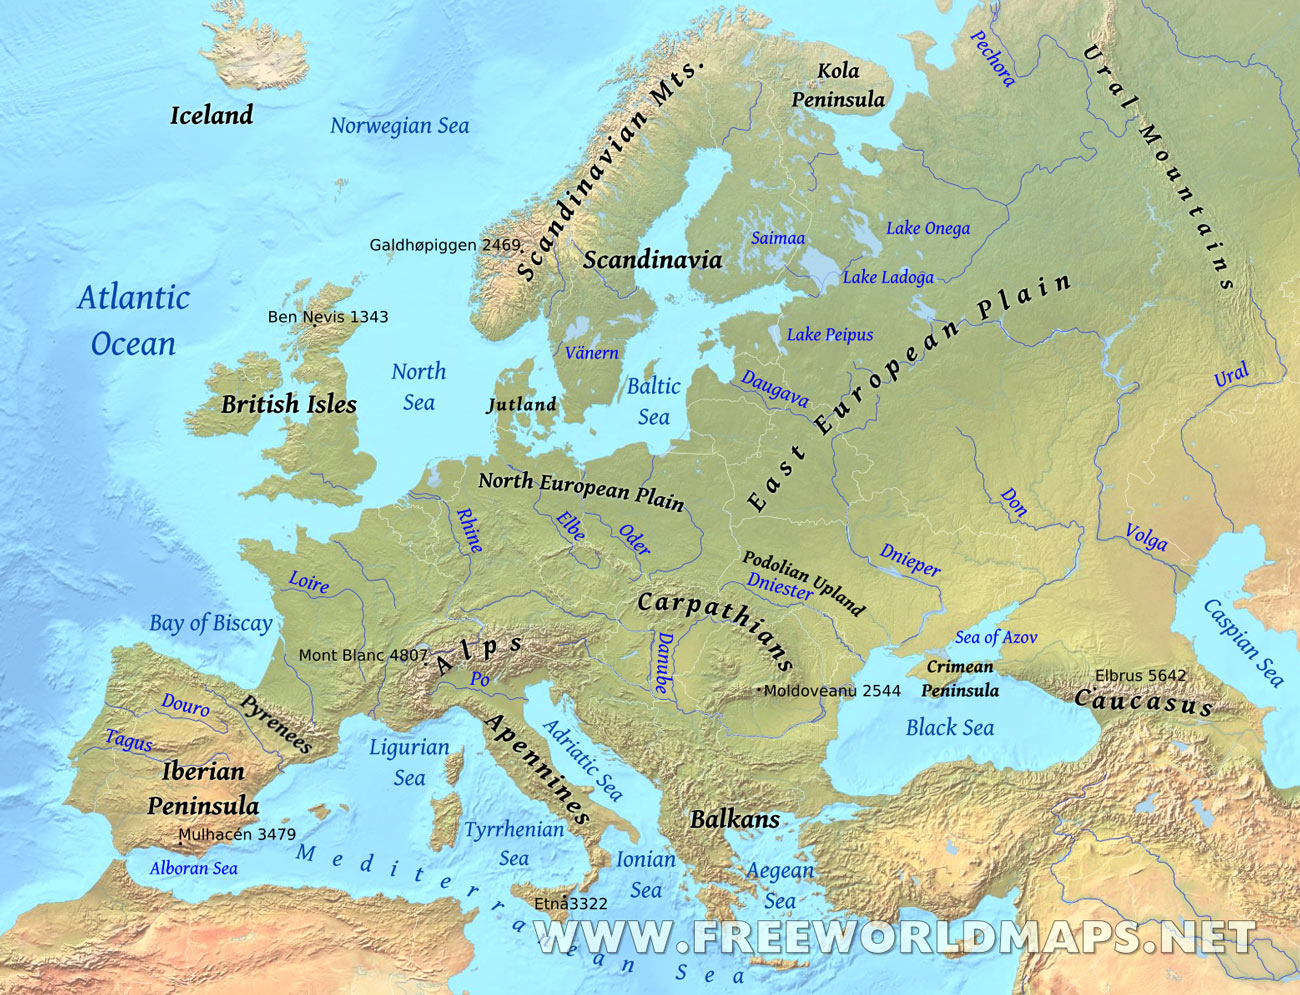 Europe Physical Map Freeworldmapsnet – Map Eurooe